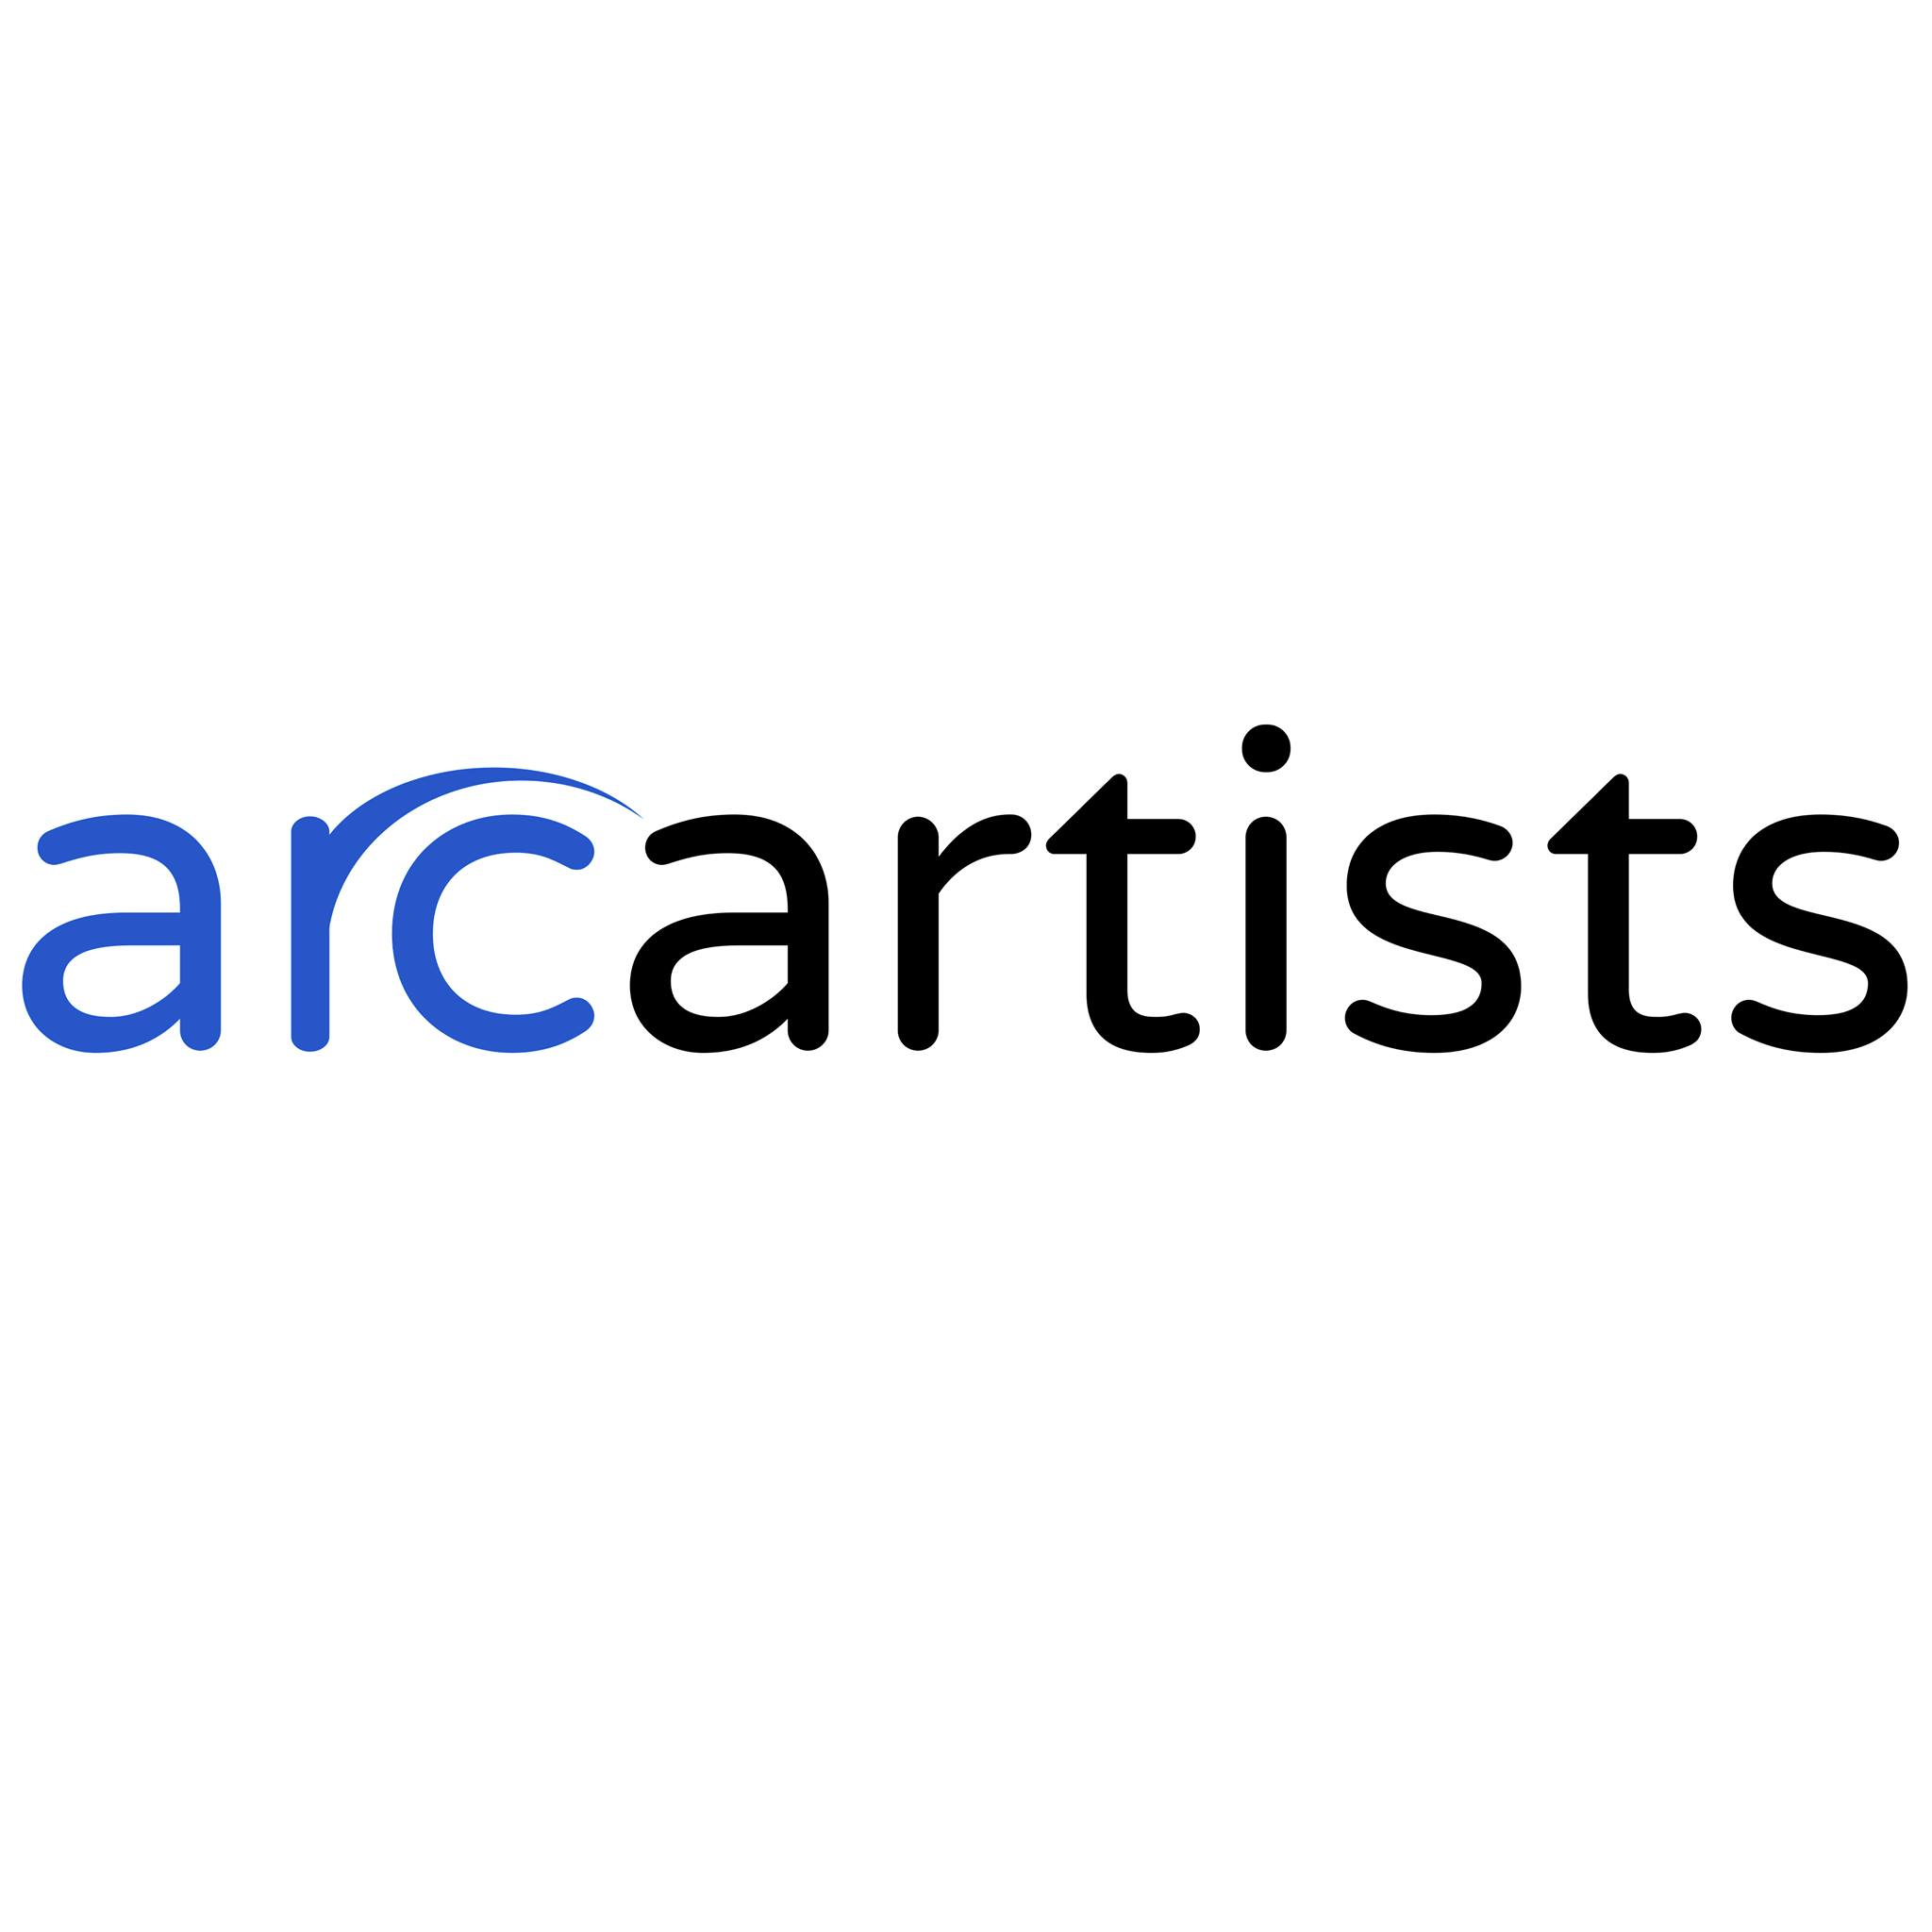 ArcArtists